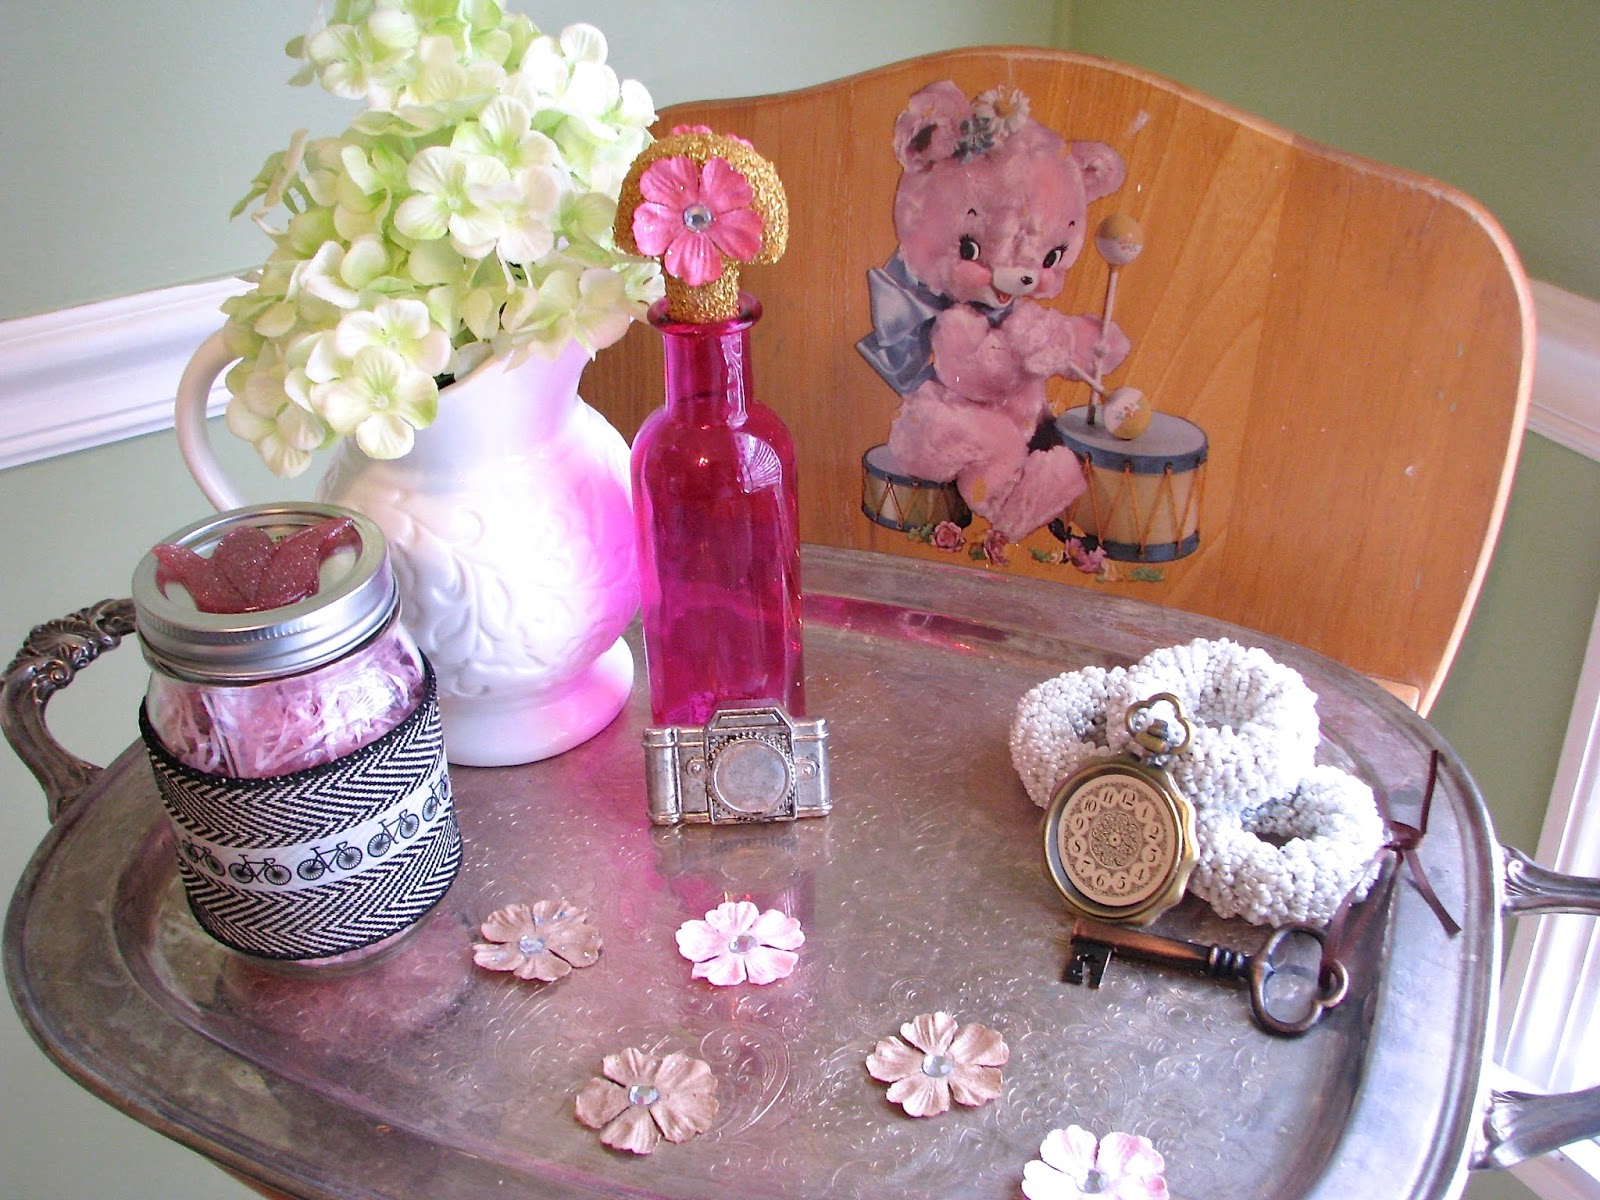 Vintage camera, skeleton key, vintage colored bottle and flowers on a silver tray